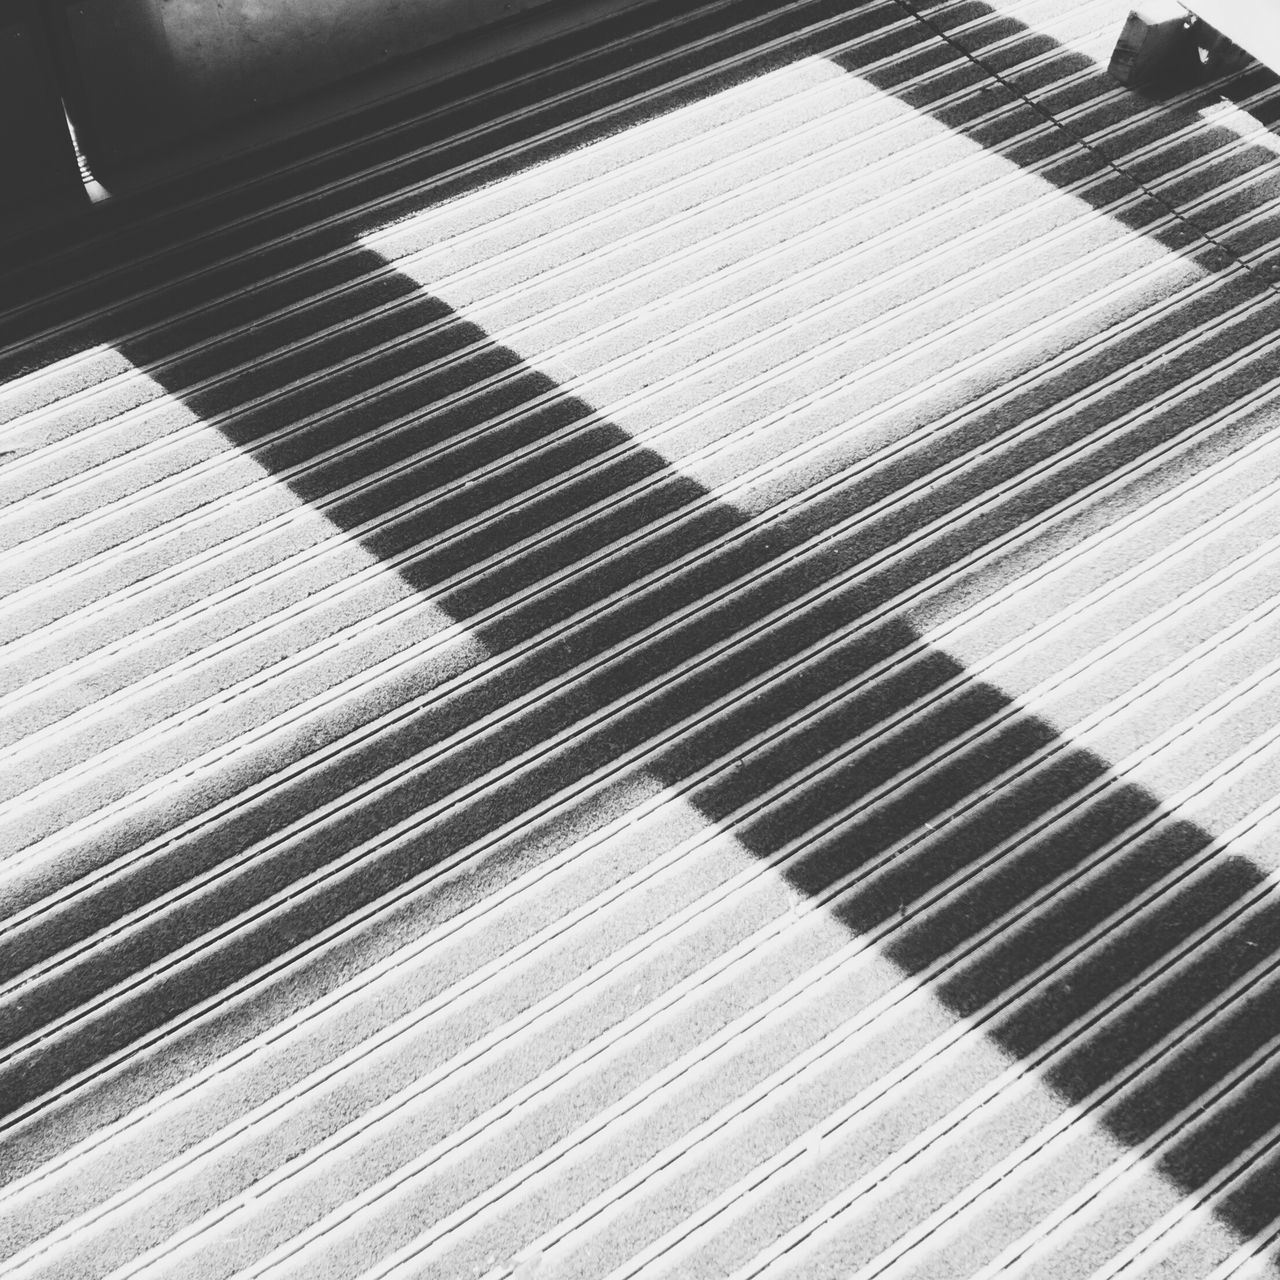 CLOSE-UP HIGH ANGLE VIEW OF BLINDS